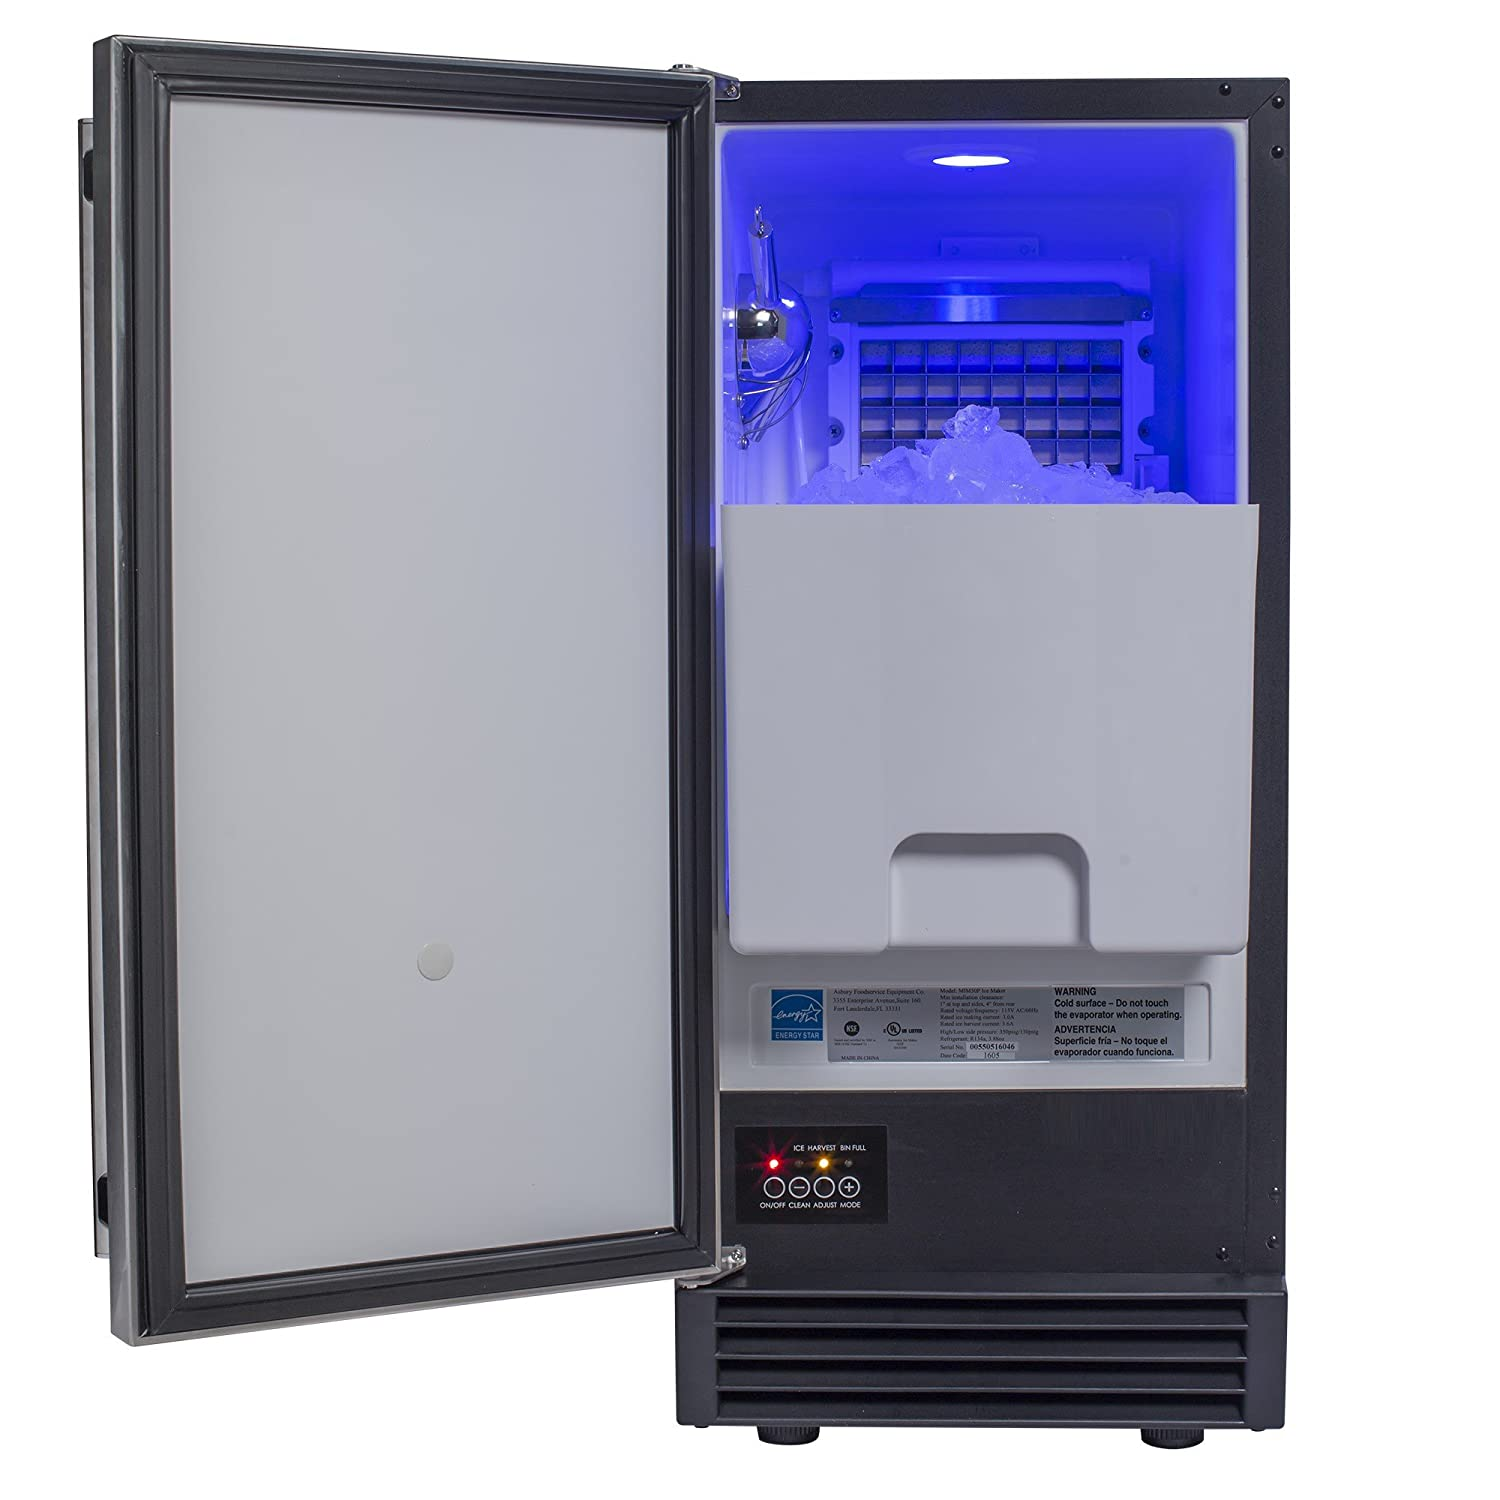 Chef's Exclusive Built-In Undercounter or Freestanding 60 Pound Per Day Clear Ice Machine Maker with Drain Pump - Energy Star - Reversible Stainless Steel Door 25 Pound Removable Ice Bin, 14.6' Wide 14.6 Wide Chef' s Exclusive CE101